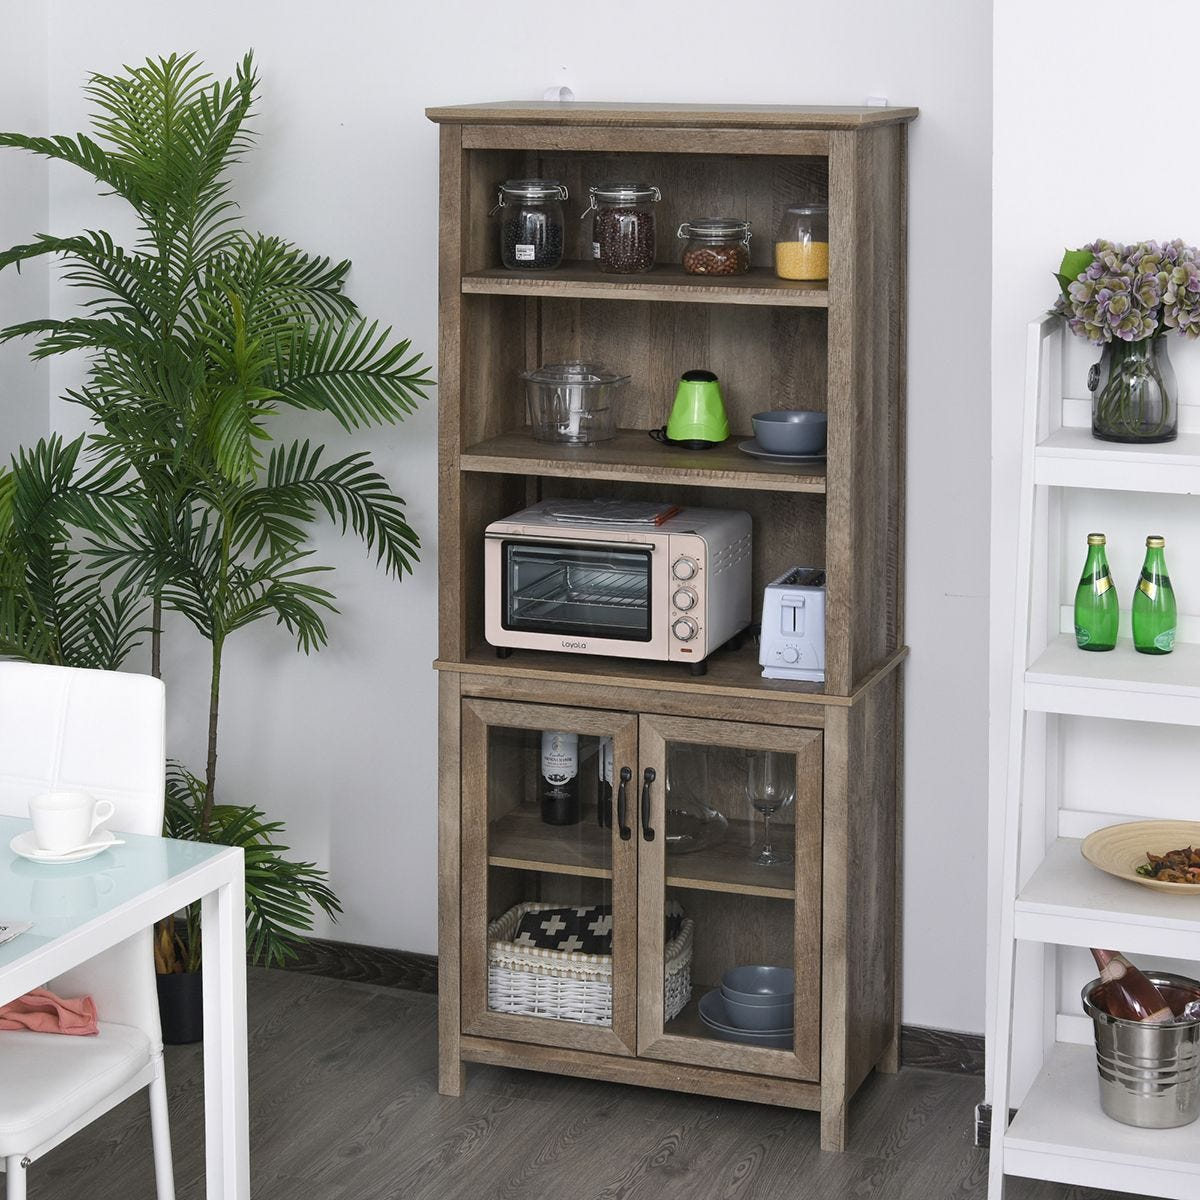 180x76cm Home Storage Unit With 3 Shelves Glass Door Cabinet Bookcase Display